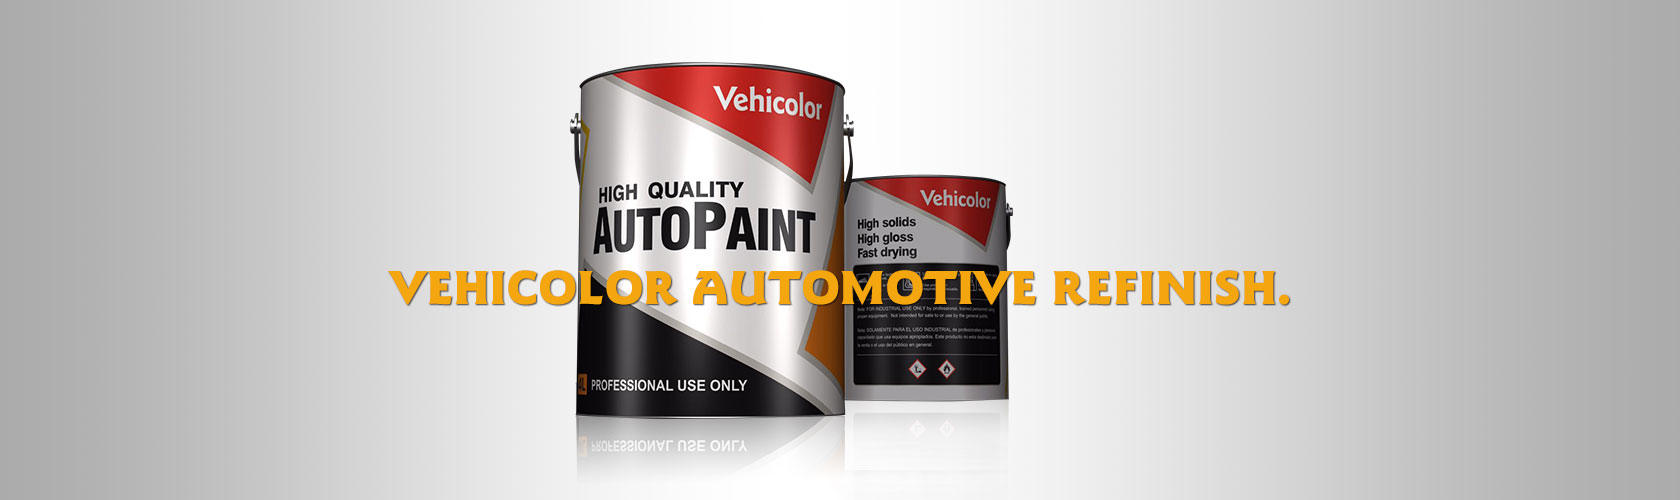 Vehicolor auto refinish